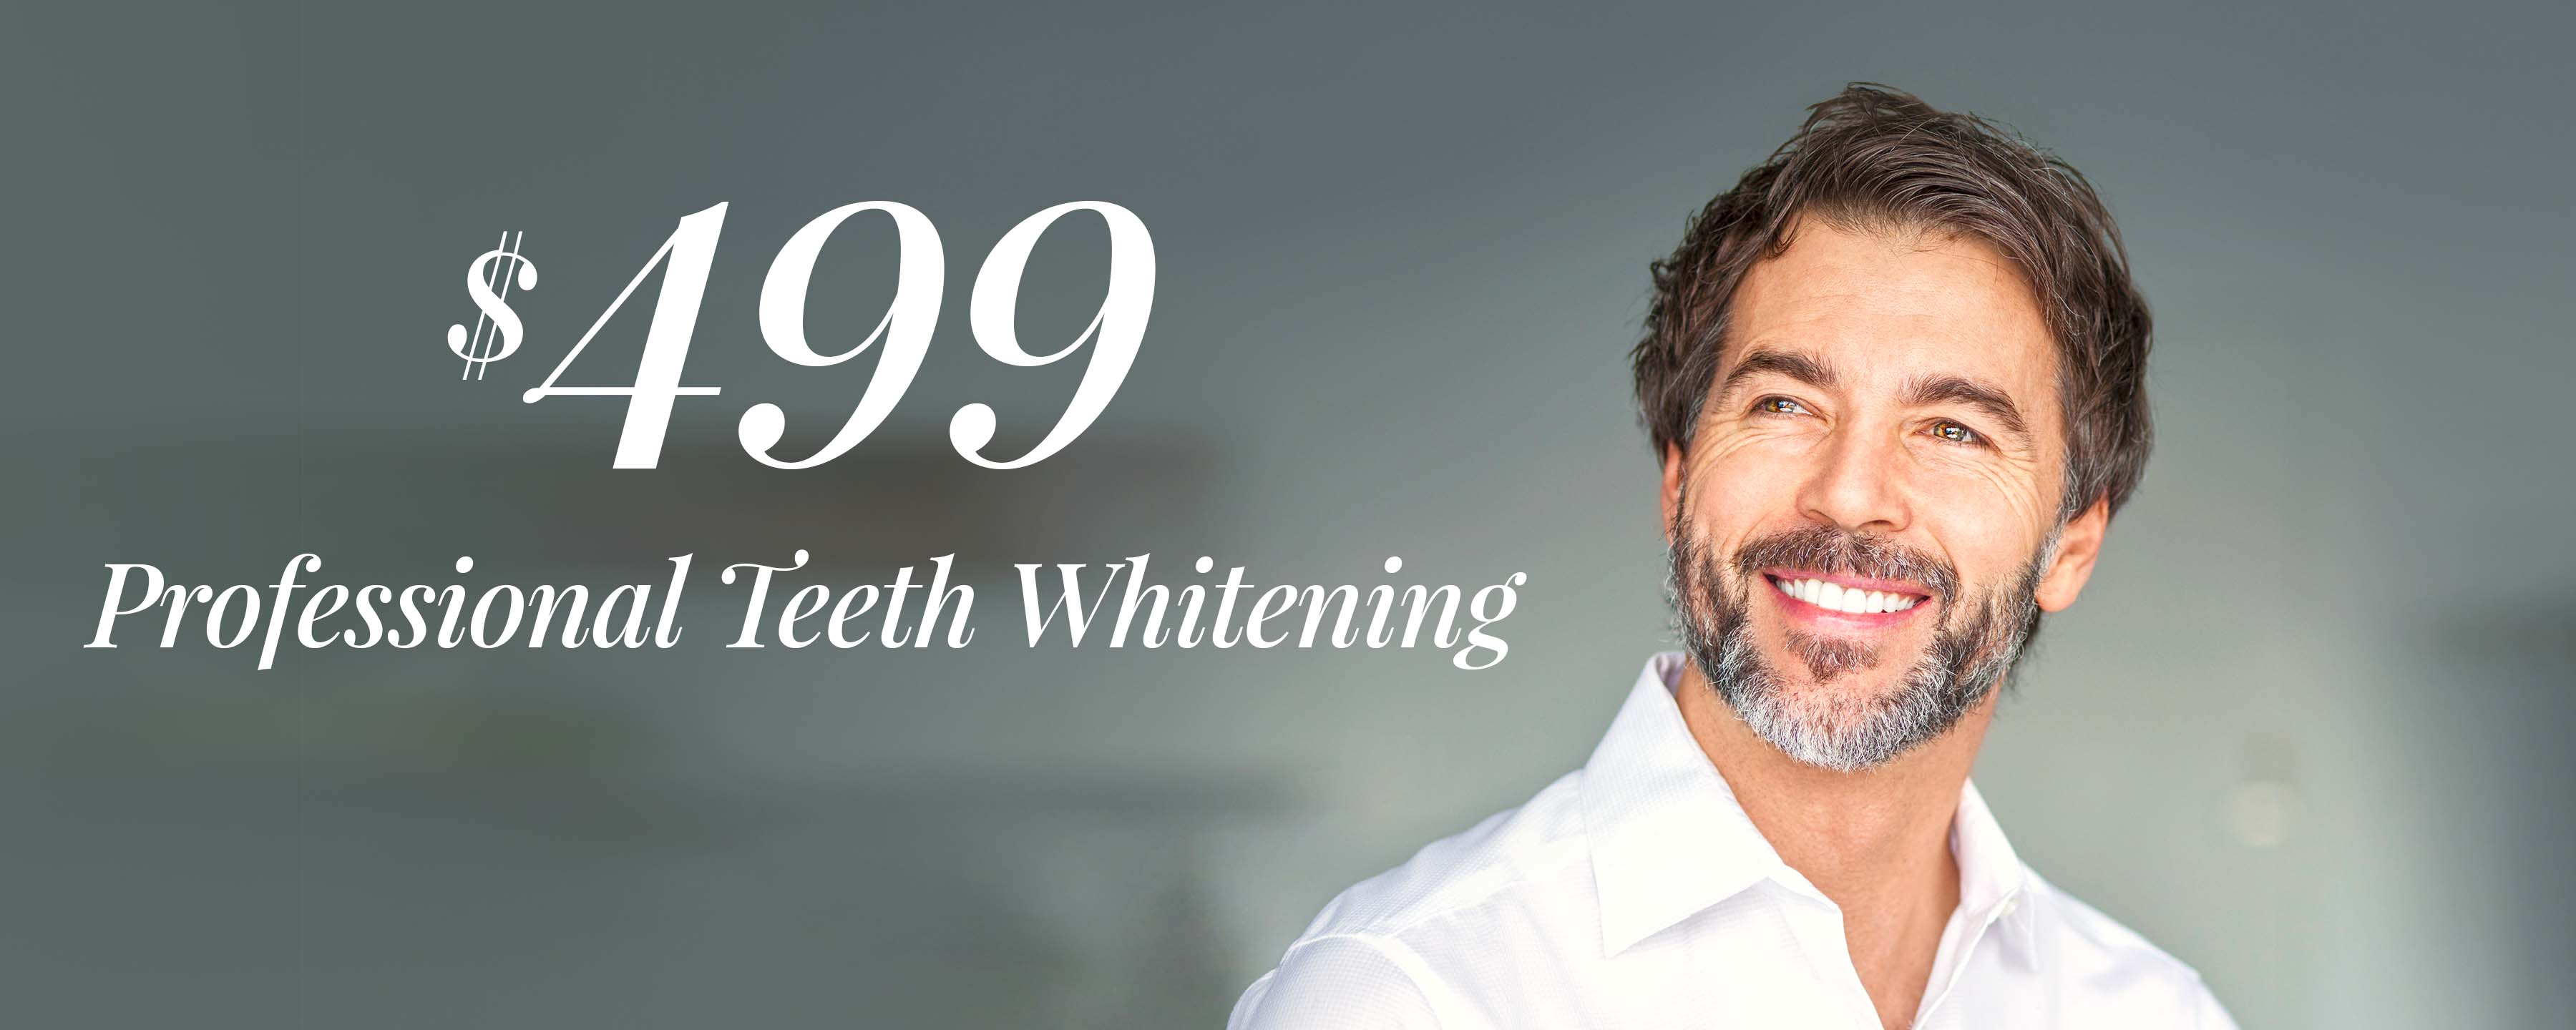 $299 Professional Teeth Whitening*